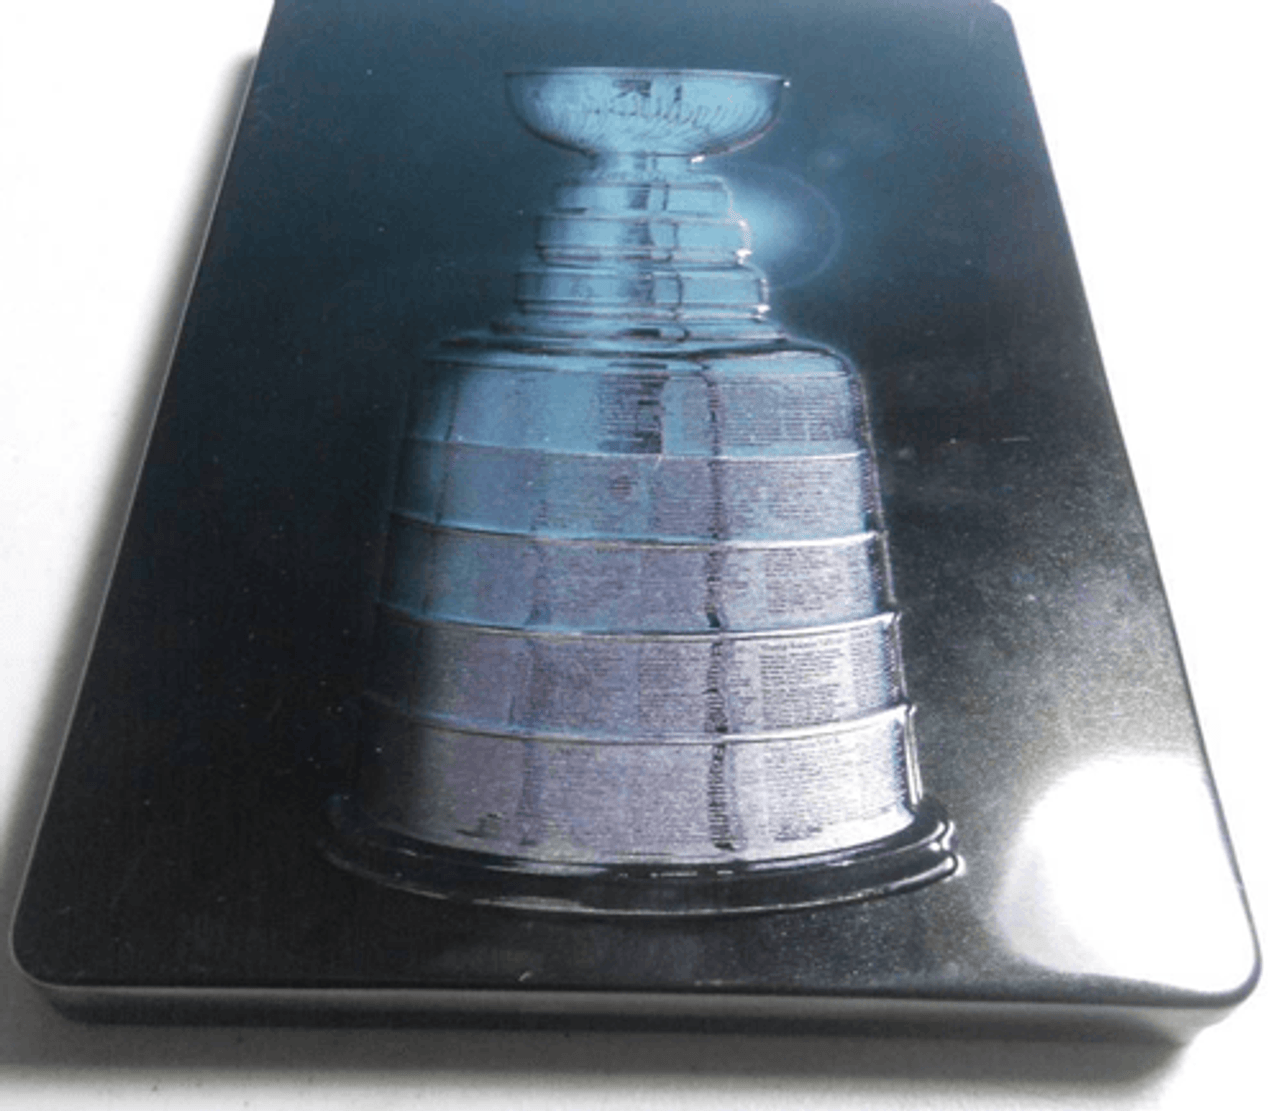 Nhl 13 stanley cup edition (steelcase) (bilingual cover.